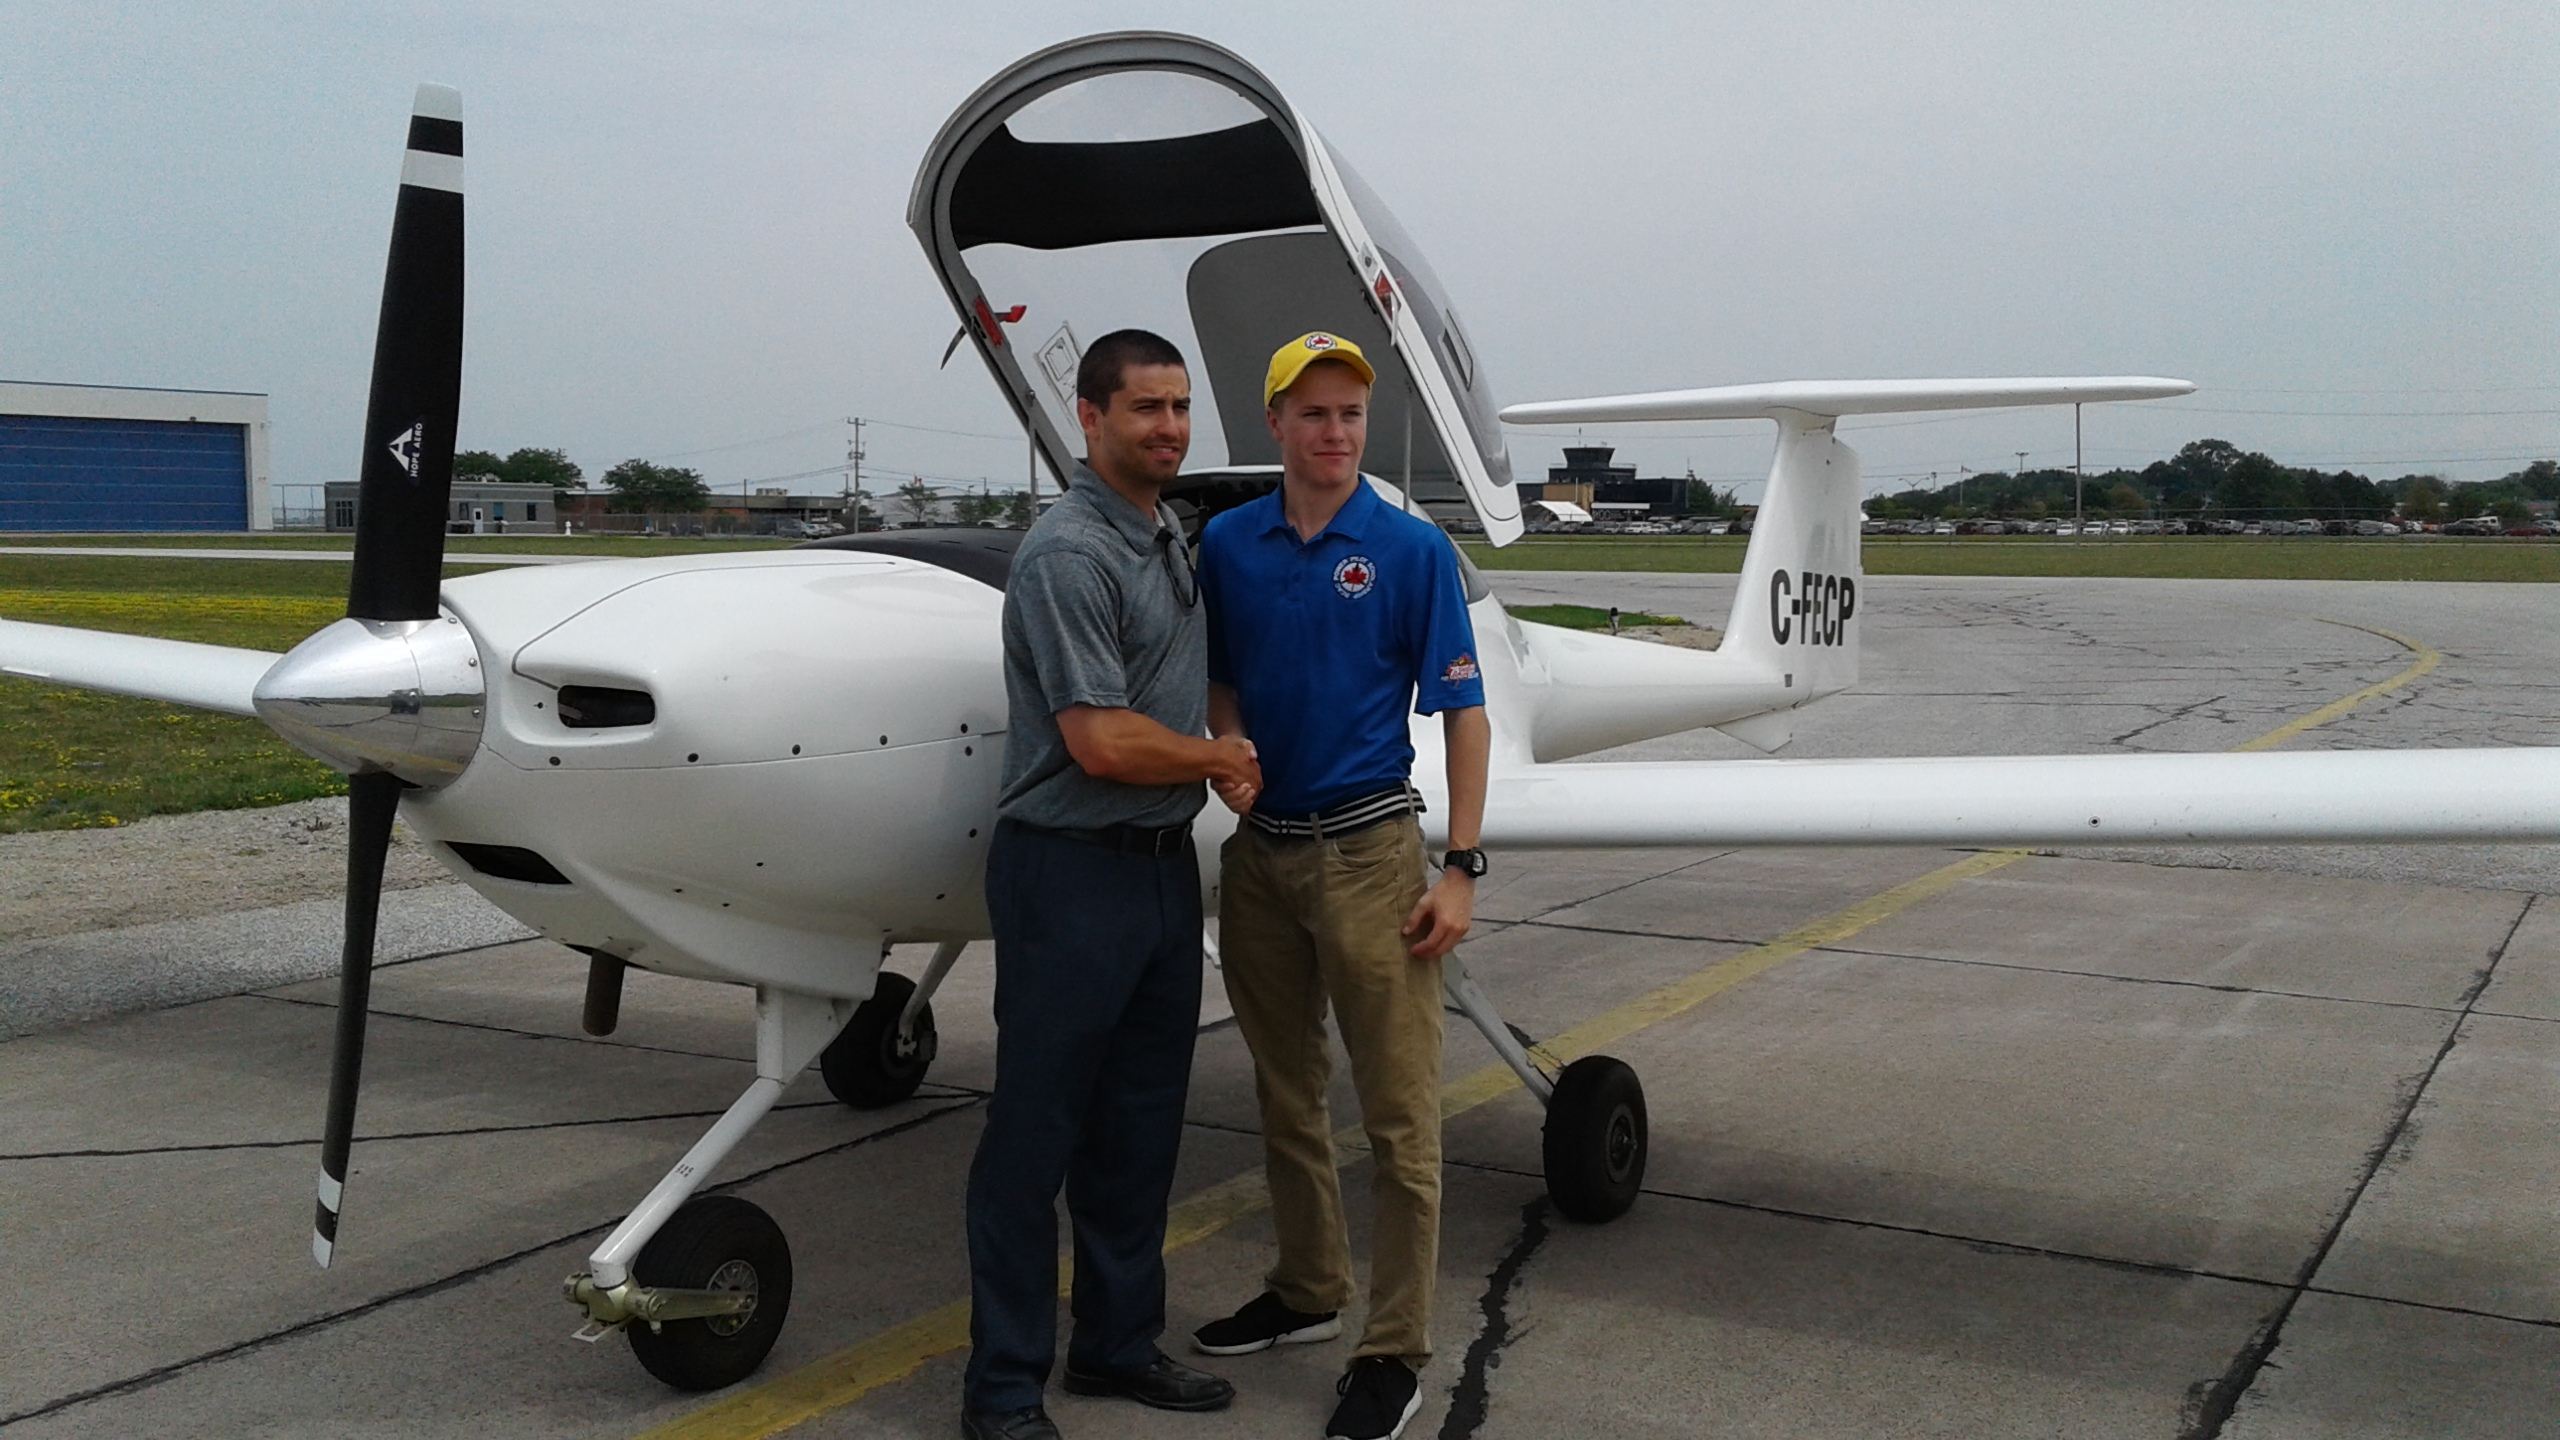 First-solo-pic-with-Instructor